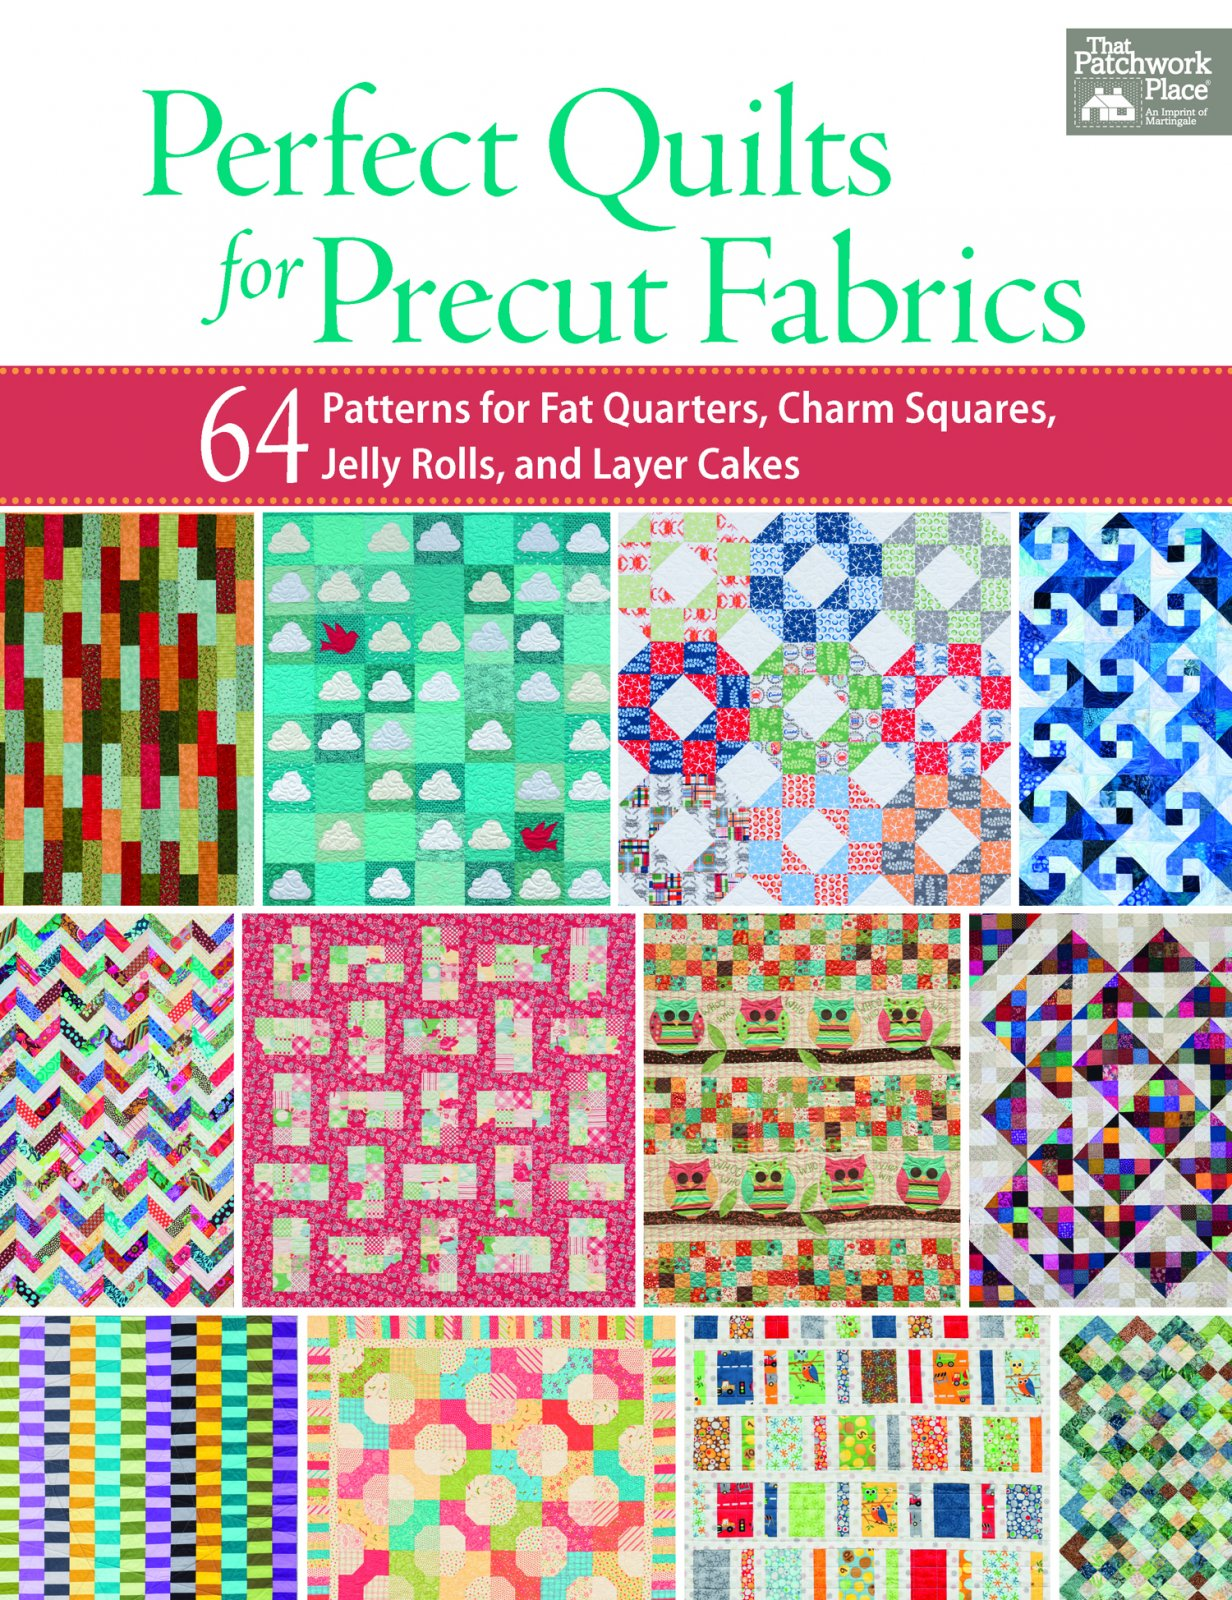 B1257 Perfect Quilts for Precut Fabrics - Softcover